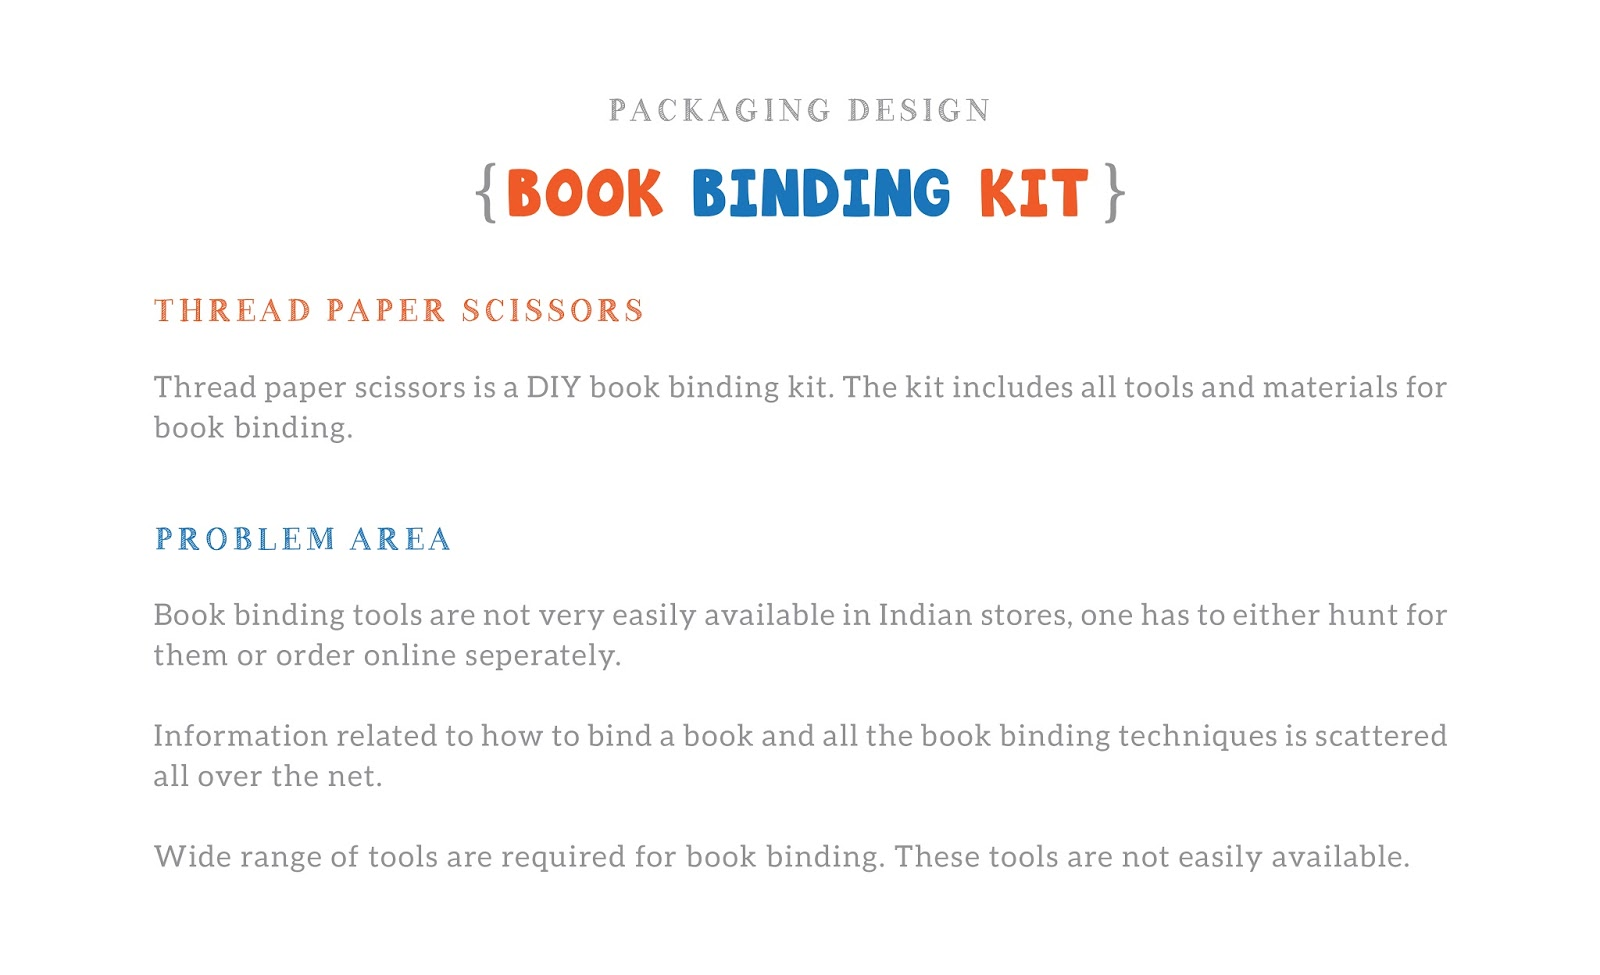 Thread paper scissors book binding kit student project on the box will be made of corrugated fiber boards which are versatile economic light and recycle able he liner is kraft paper which is stuck on either side solutioingenieria Choice Image